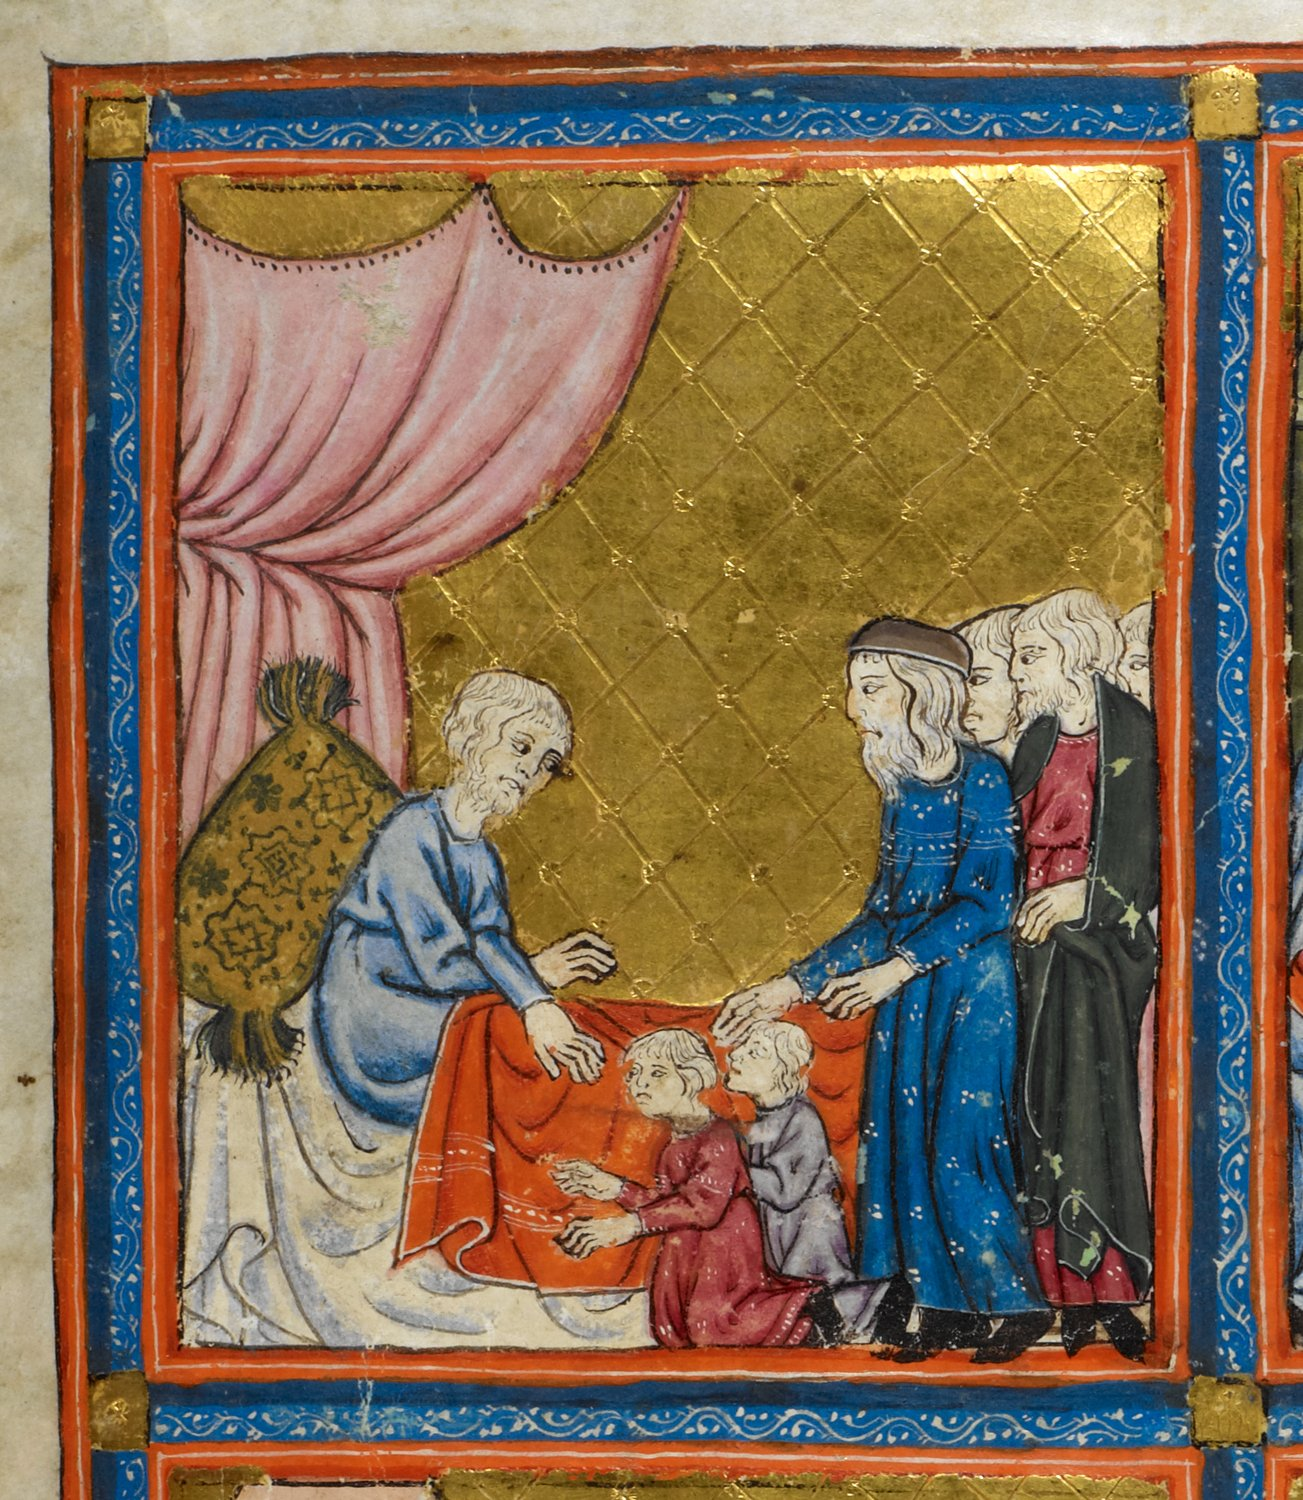 Golden Haggadah Jacob Blessing Ephraim and Manasseh